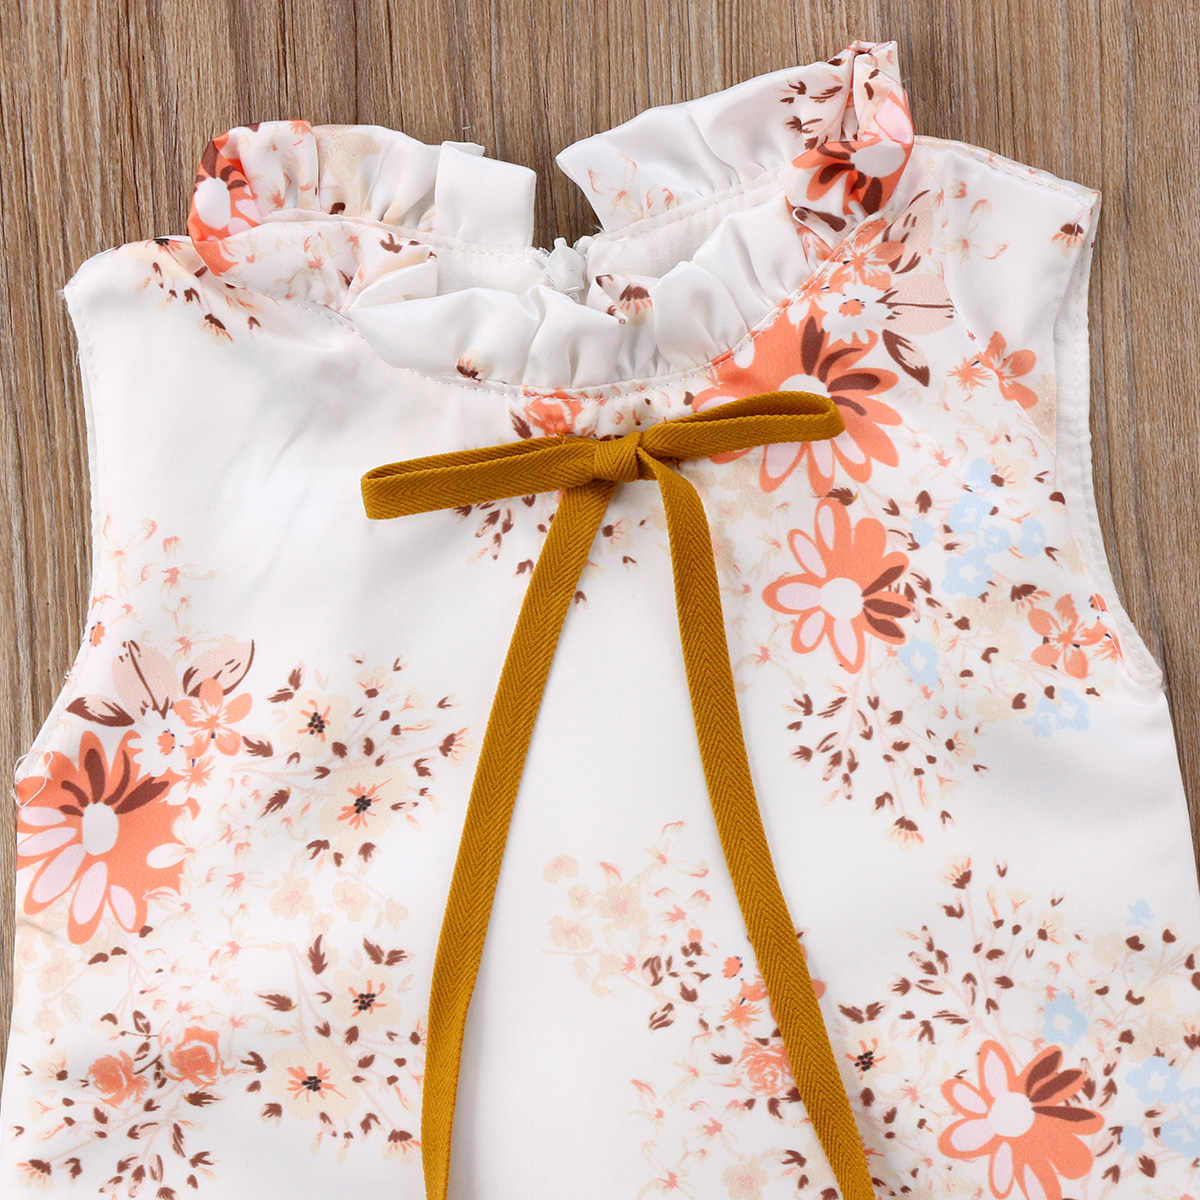 1dc294e94ccf9 2018 Simple style Toddler Kids Baby Girls Princess Sleeveless Yellow Floral  Dress Party Clothes Summer 0-6T